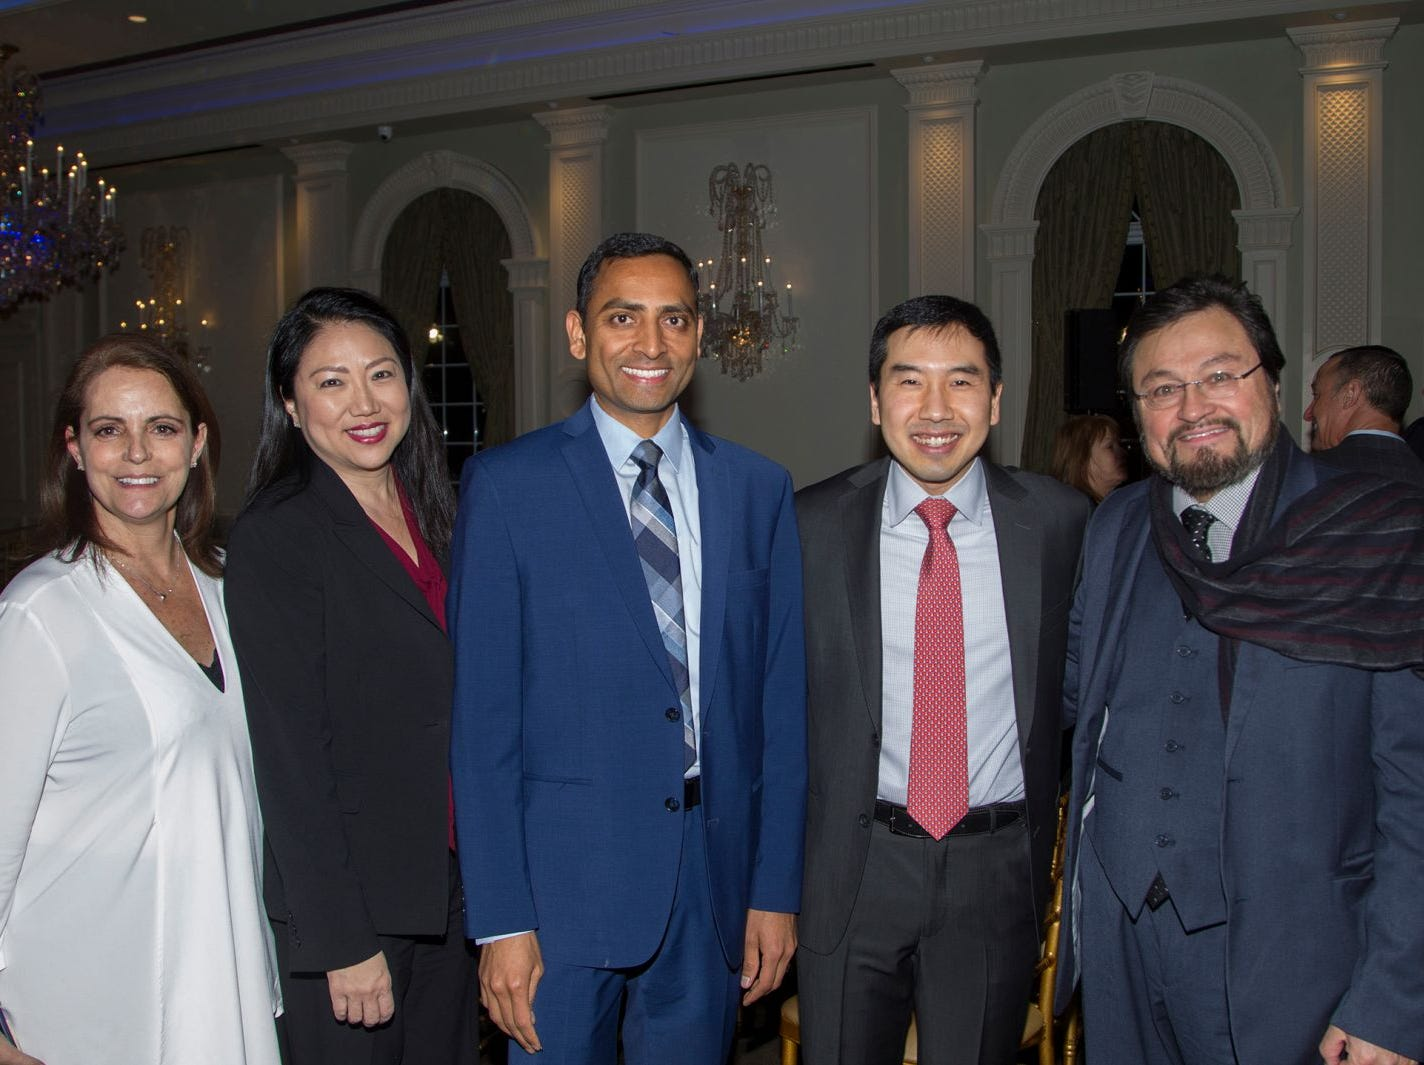 Dr. Diane Schwartz, Alicia Park, Ravikanth Koganti, Dr. Peter Shin,  Dr. Carols Quezade. Englewood Health held its annual Medical Staff Recognition Dinner at Rockliegh Country Club. 01/17/2019